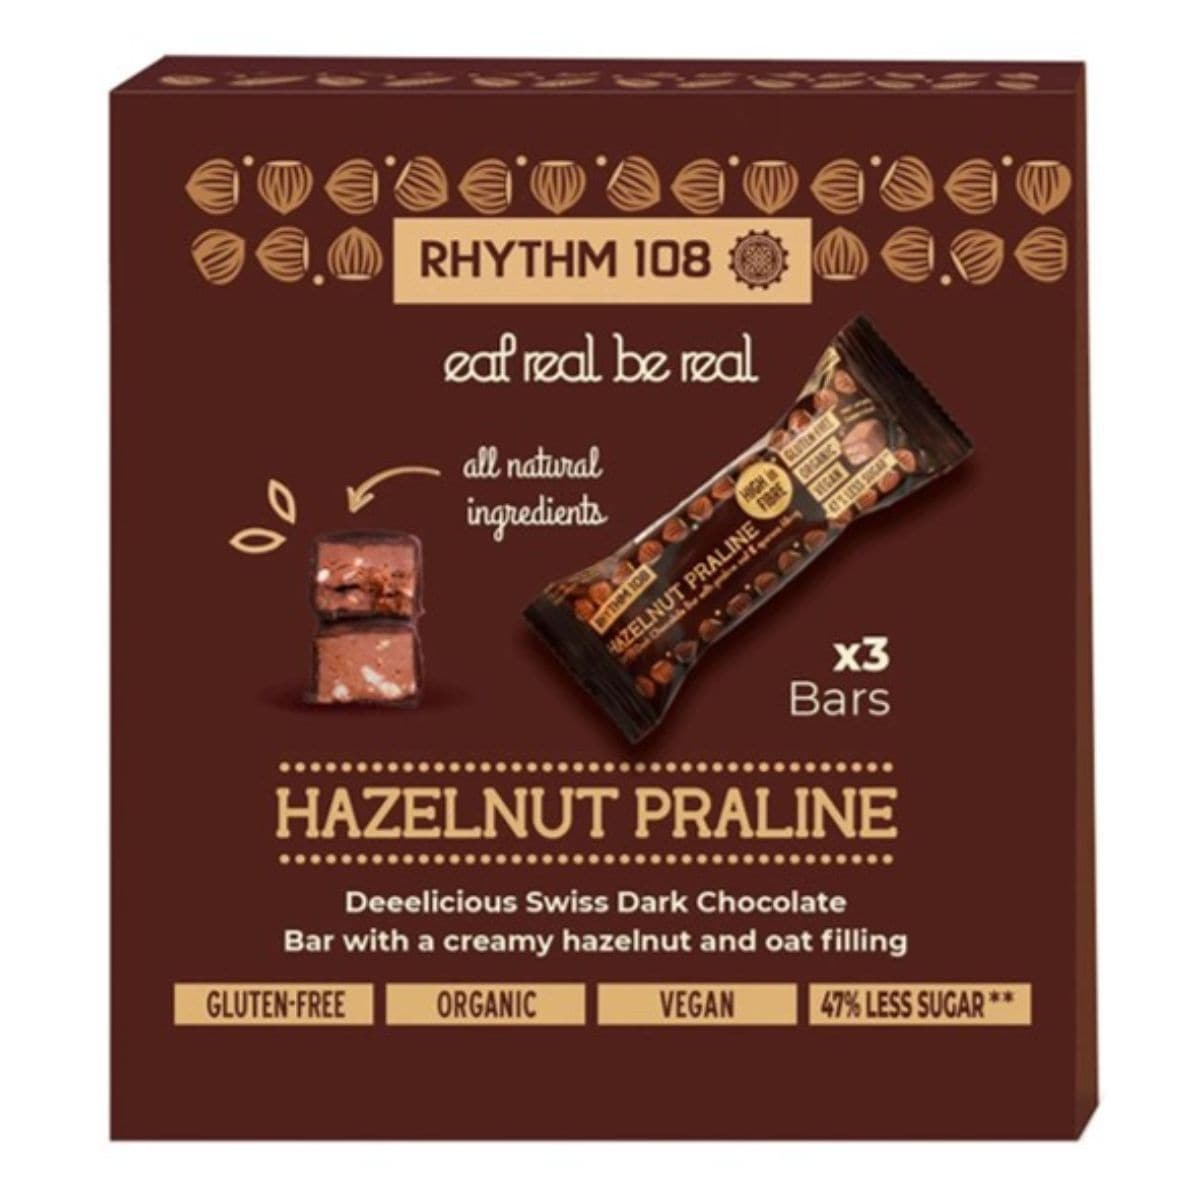 Rhythm 108 Swiss Chocolate Bar - Hazelnut Praline Multipack (33gx3) - SoulBia